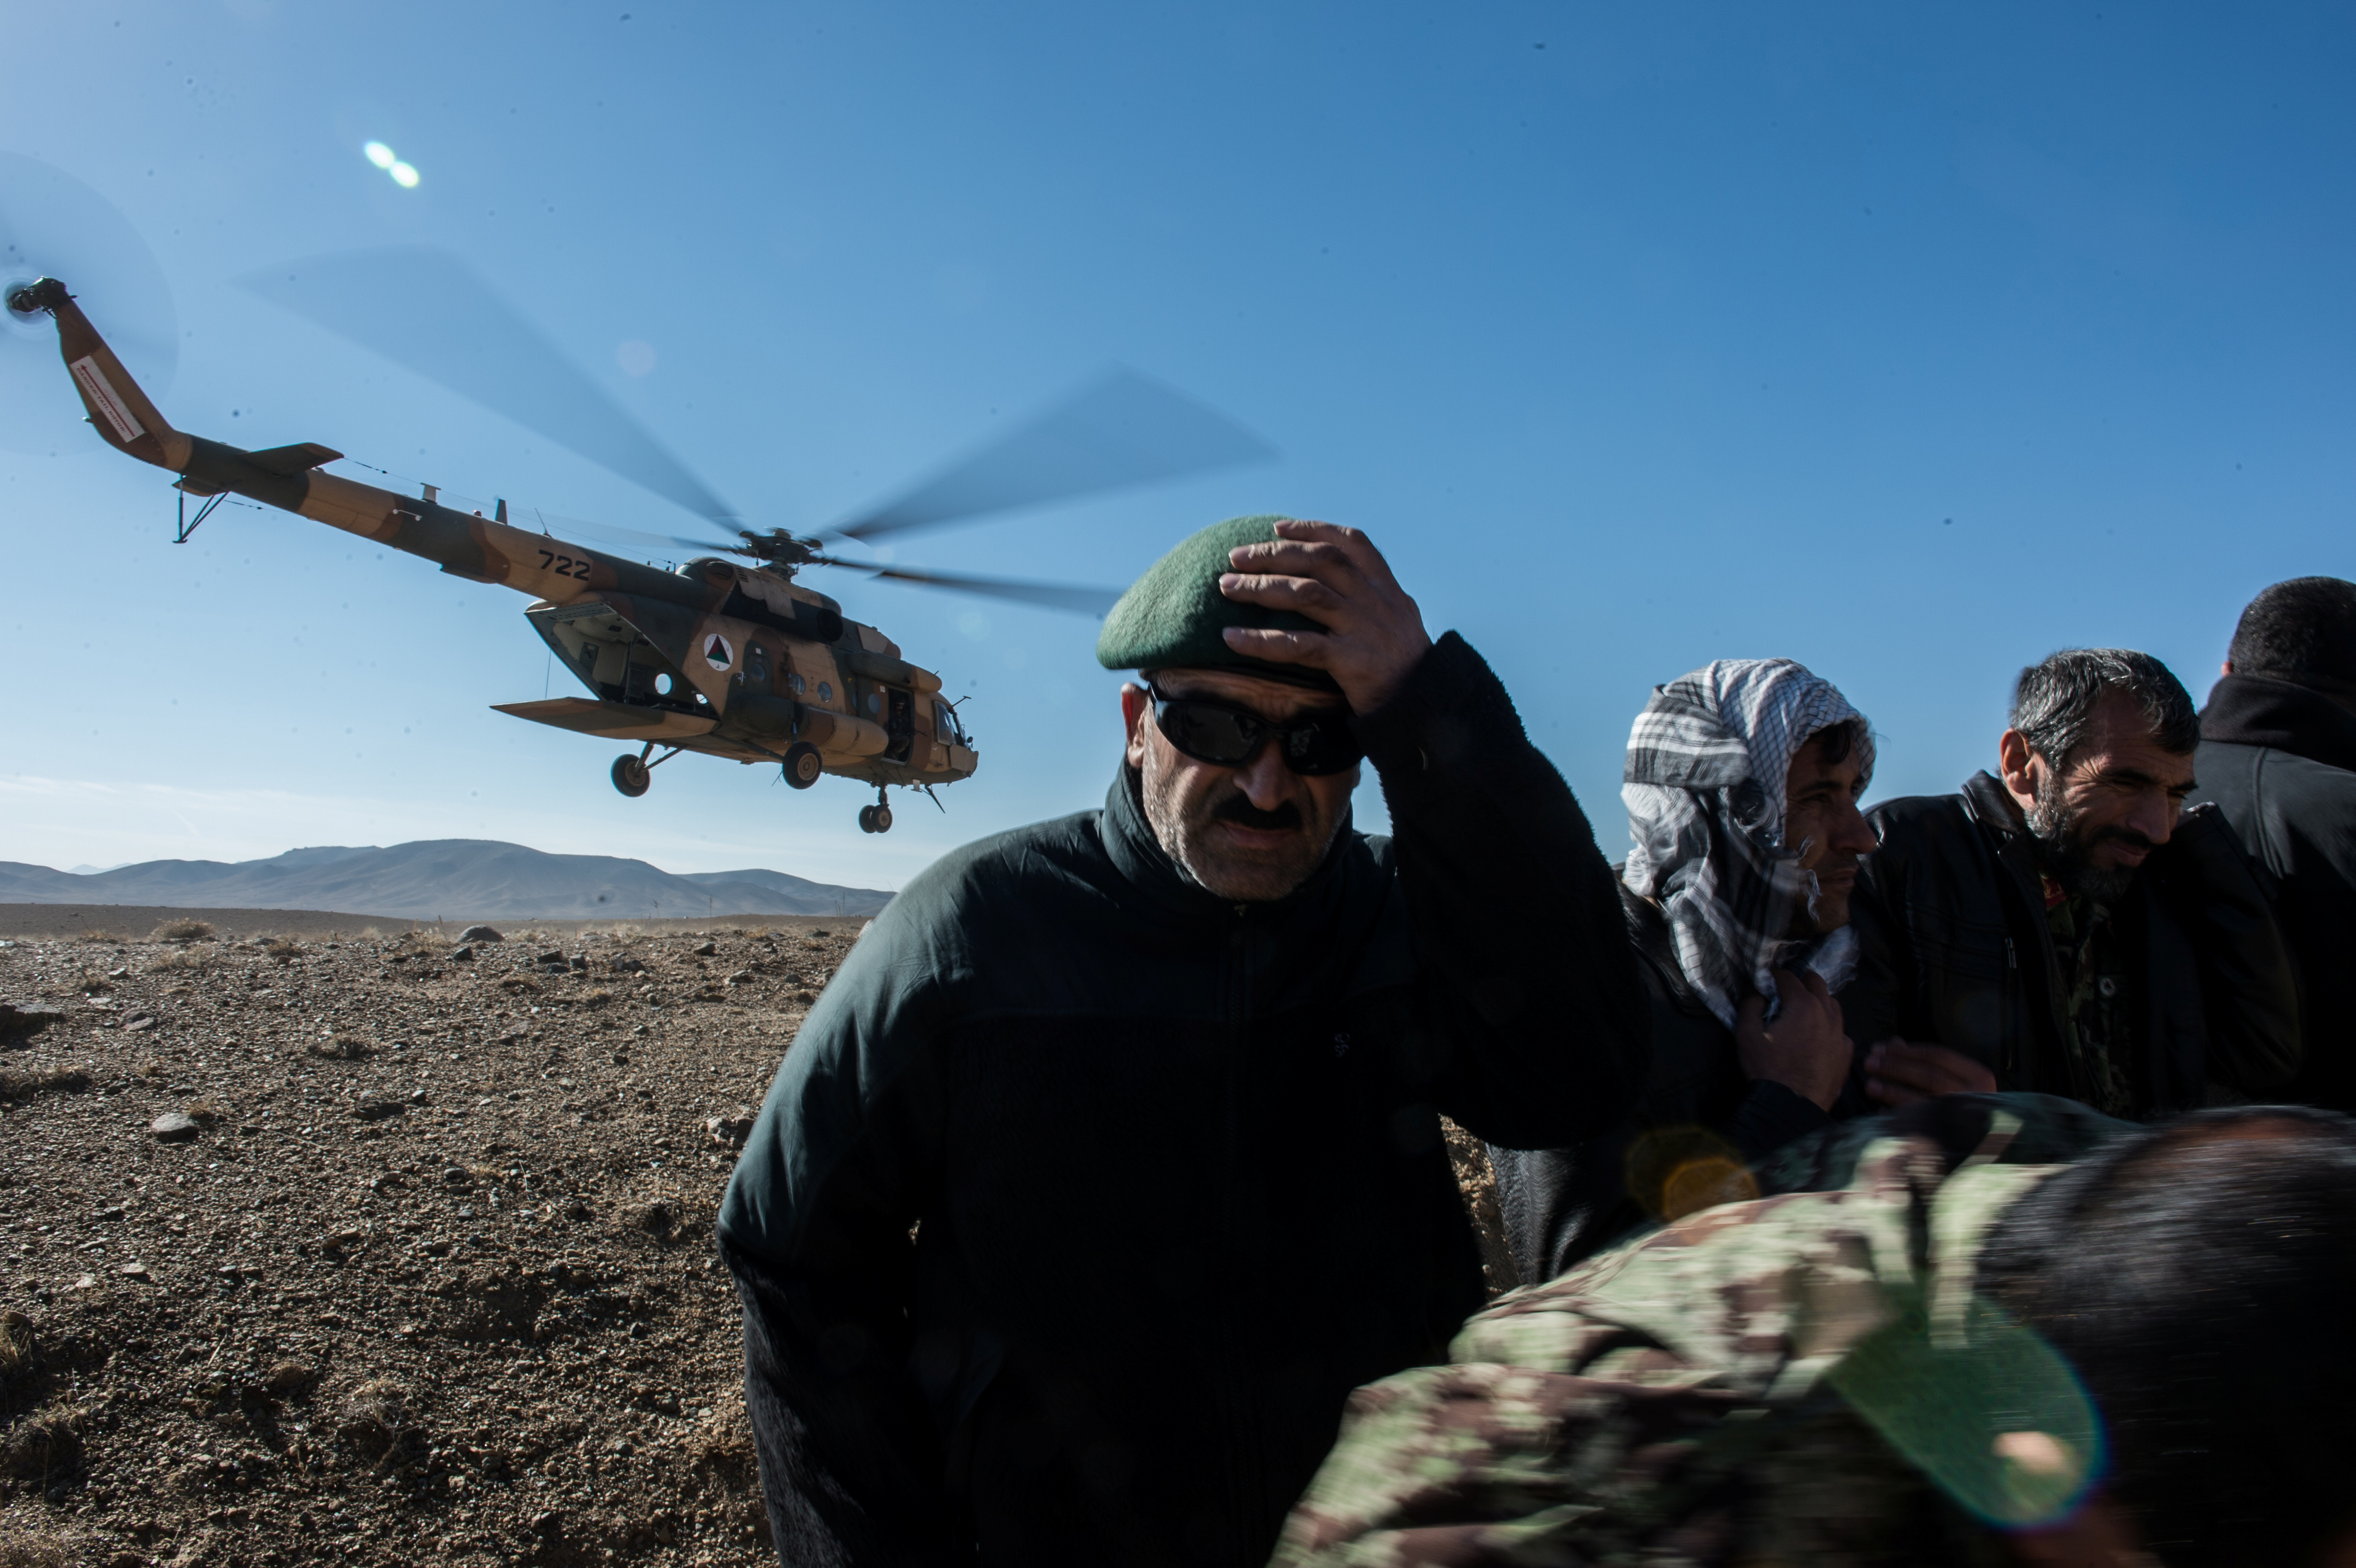 Afghan students take cover as a Mi-17 takes off to provide air cover during the final scenario before graduating from Air Liaison Officer School at Forward Operating Base Hunter range, Afghanistan  November 25, 2014. Picture taken  November 25, 2014. To match Special Report USA-AFGHANISTAN/PILOTS       U.S. Air Force/Staff Sgt. Perry Aston/Handout via REUTERS.